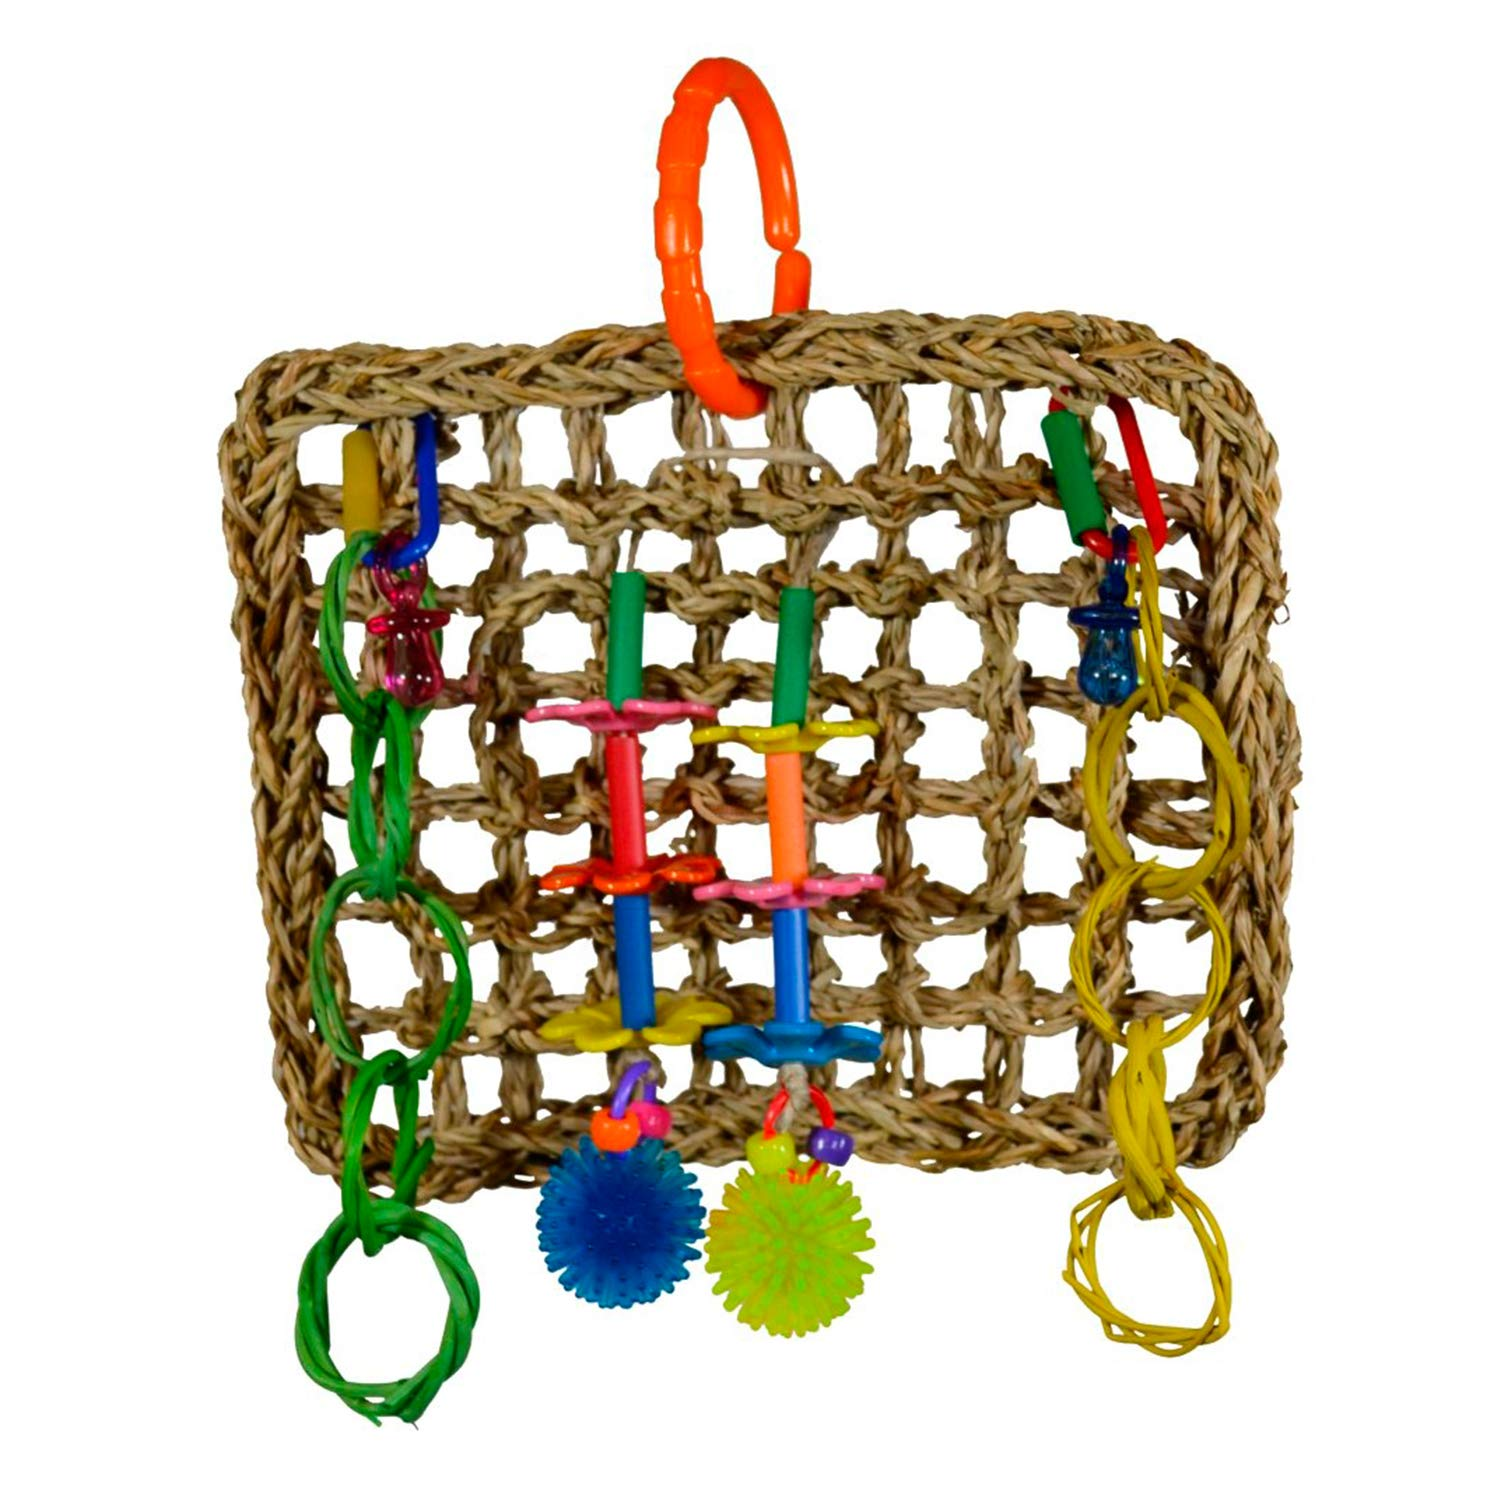 "Super Bird Creations Seagrass Mini Activity Wall with Colorful Foraging Toys for Parrots, Medium Size, 9"" x 7"" x 2"""